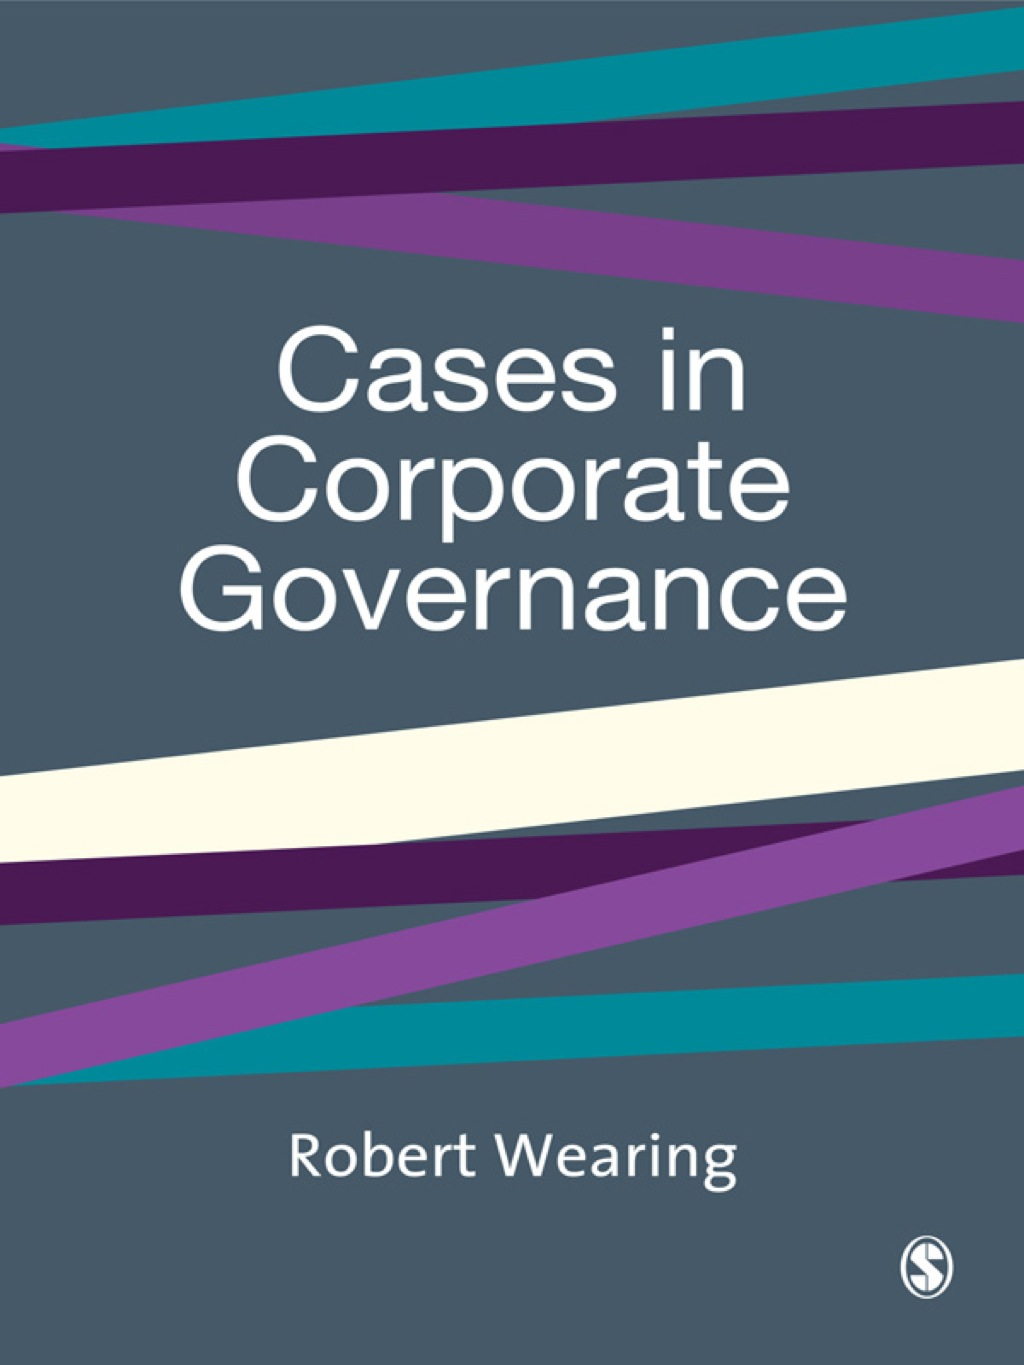 Cases In Corporate Governance (ebook)